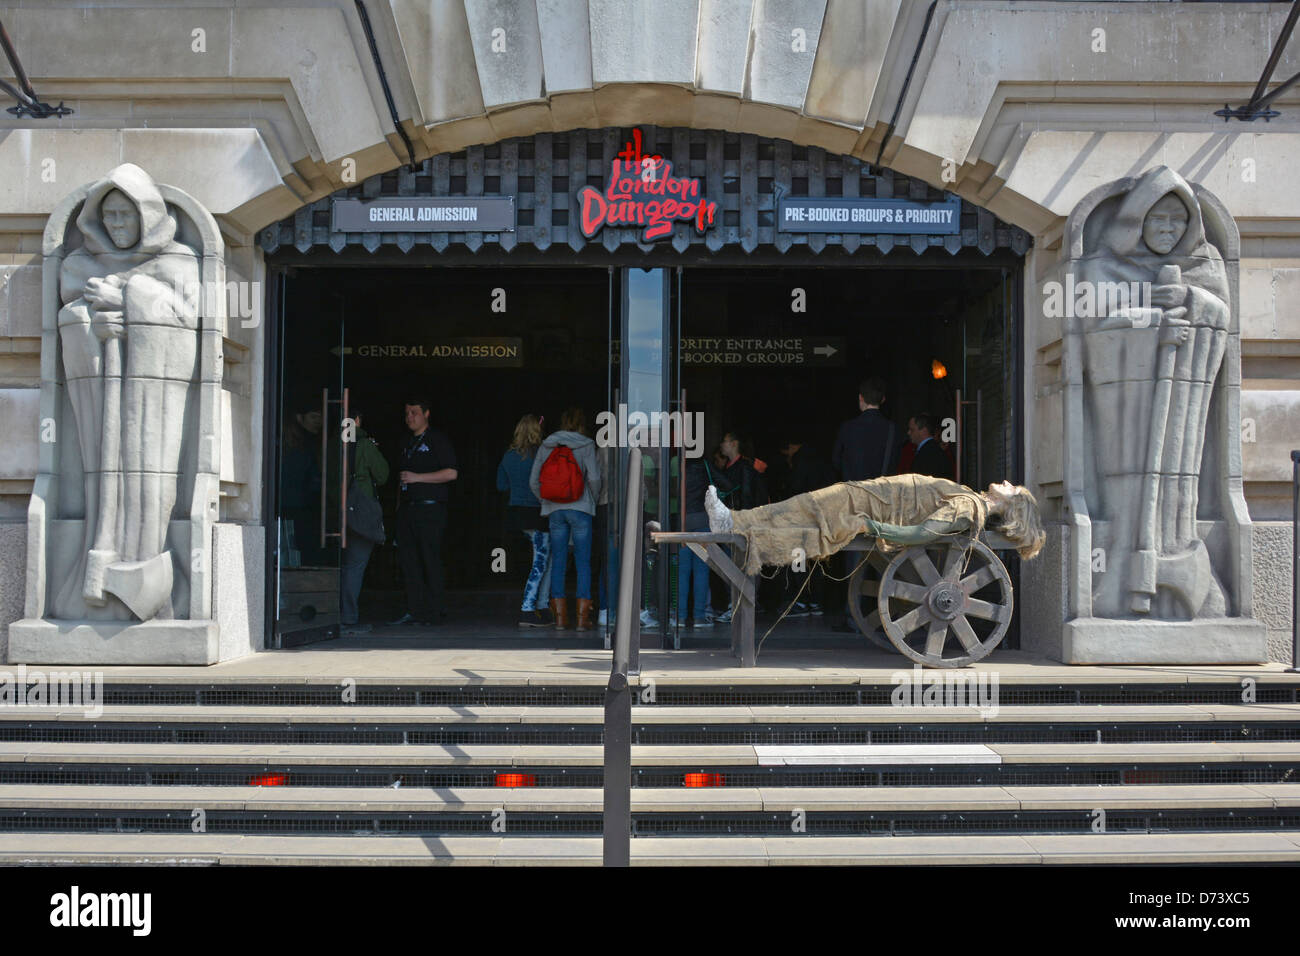 South Bank County Hall entrance to the New London Dungeon on the South Bank run by Merlin Entertainments attractions - Stock Image